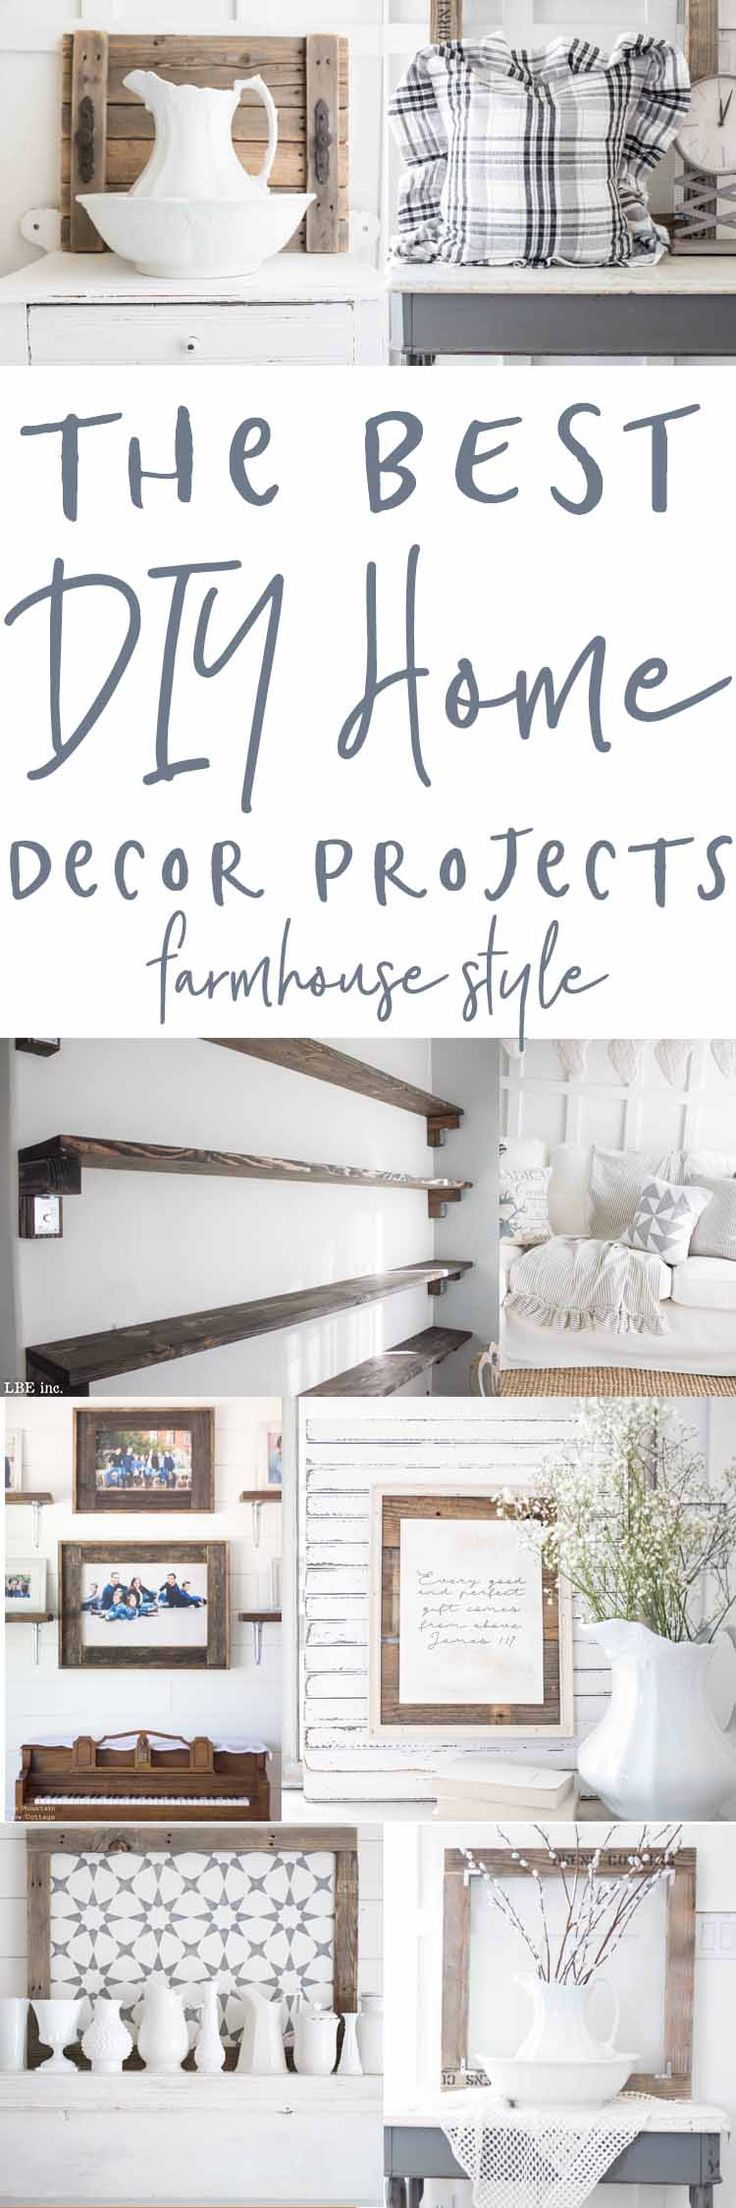 Home Decor Projects - Farmhouse Style